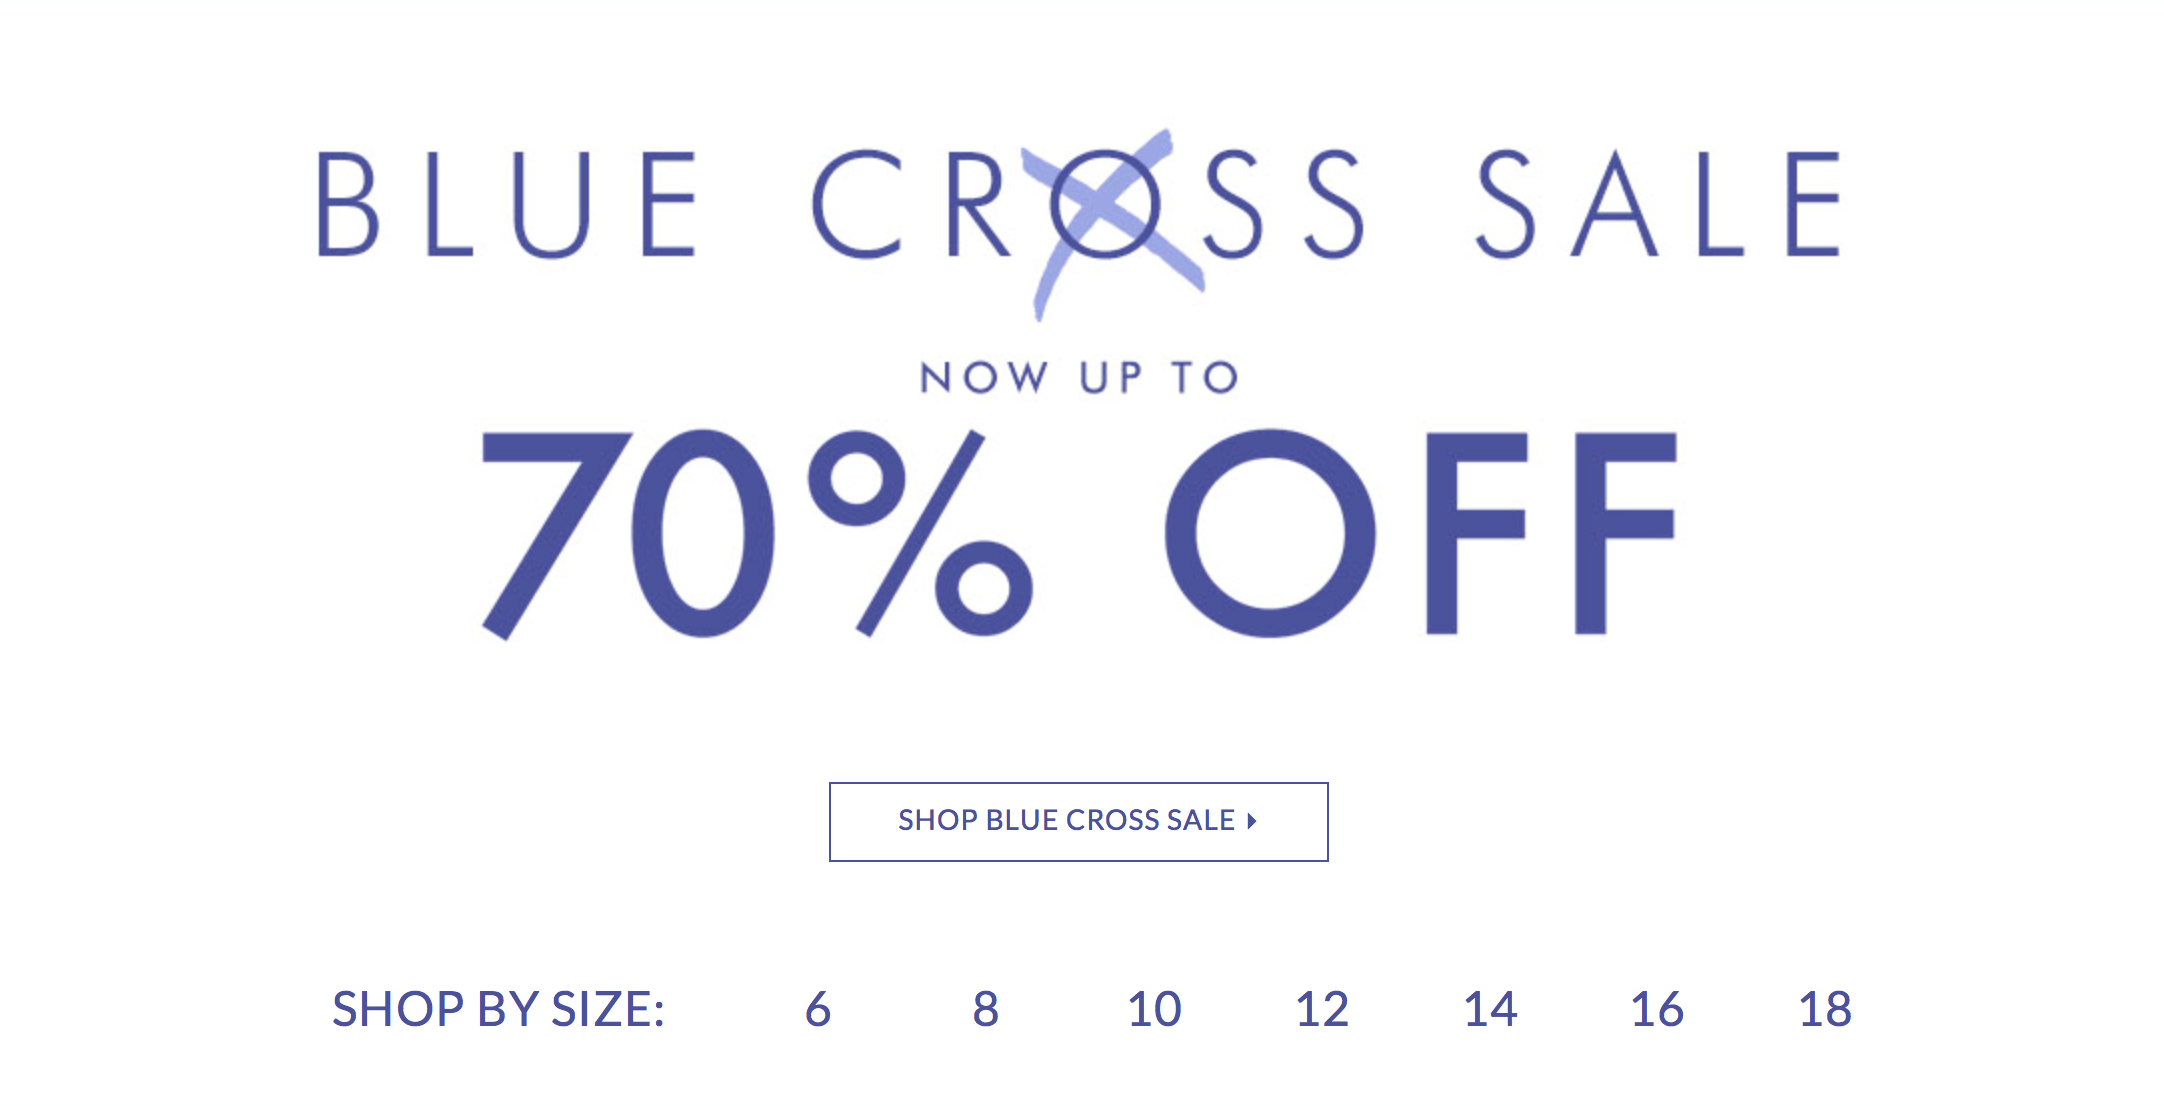 Precis: Sale up to 70% off ladies accessories and clothing